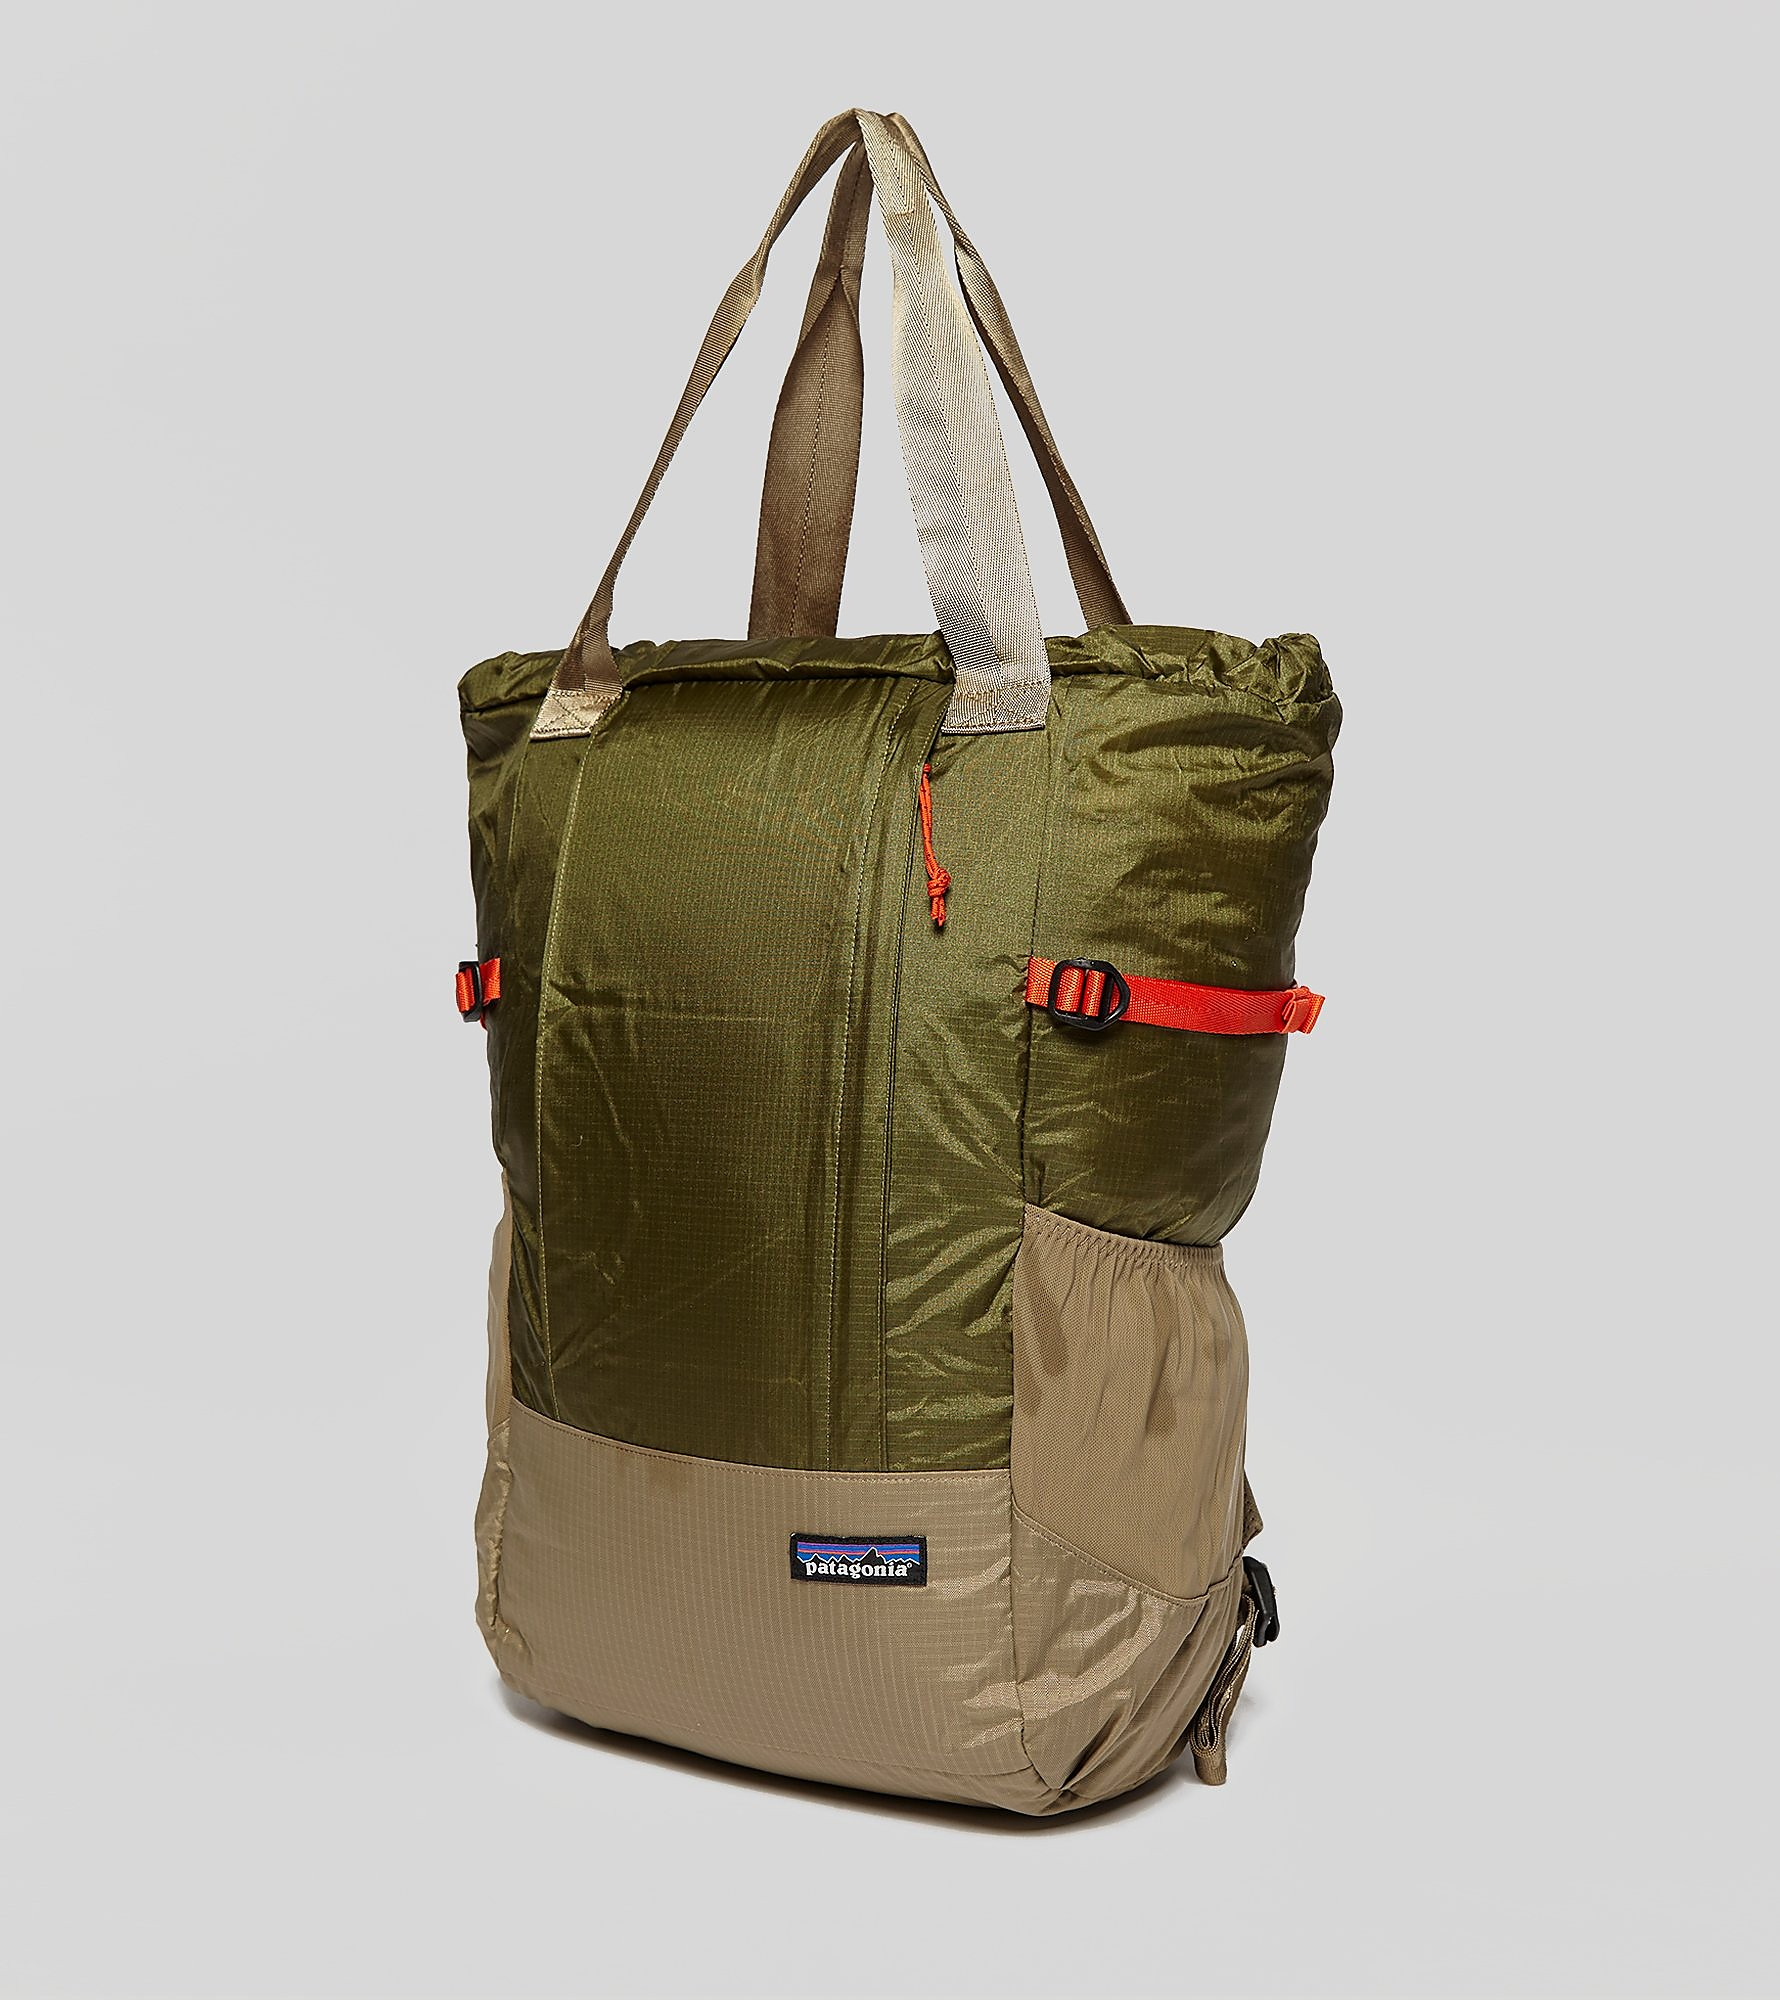 Patagonia Lightweight Travel Tote Bag